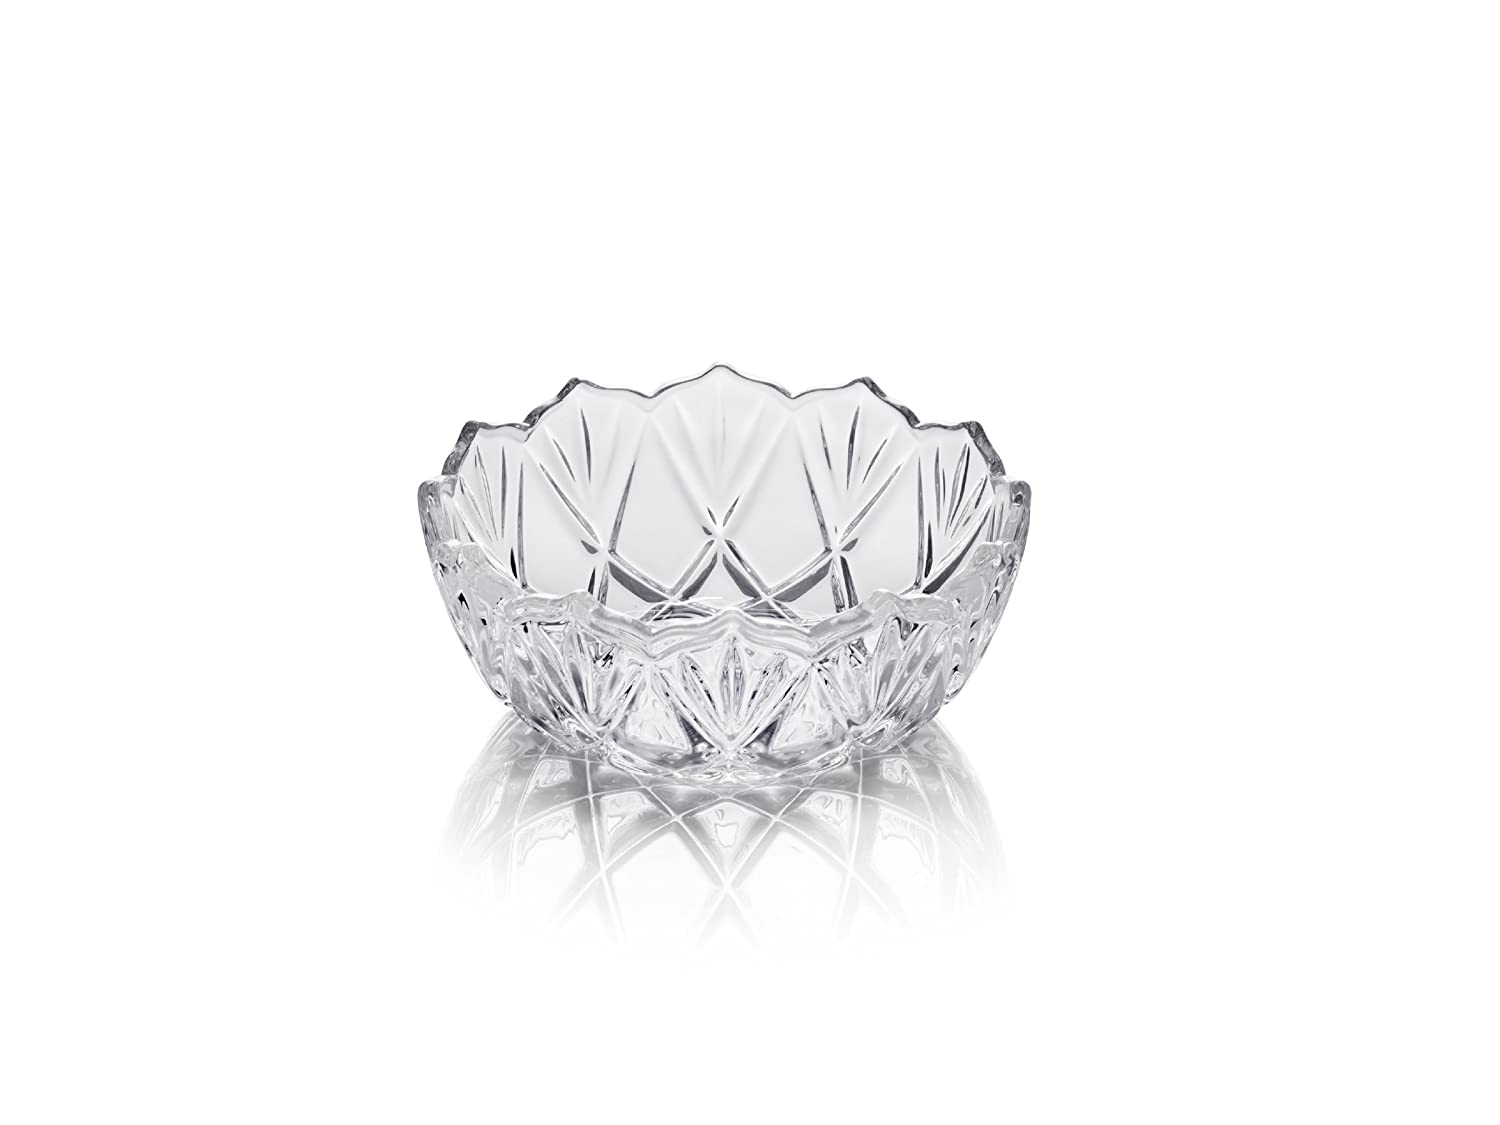 Mikasa Saturn Candy Dish, 6 6 Lifetime Brands 5152844